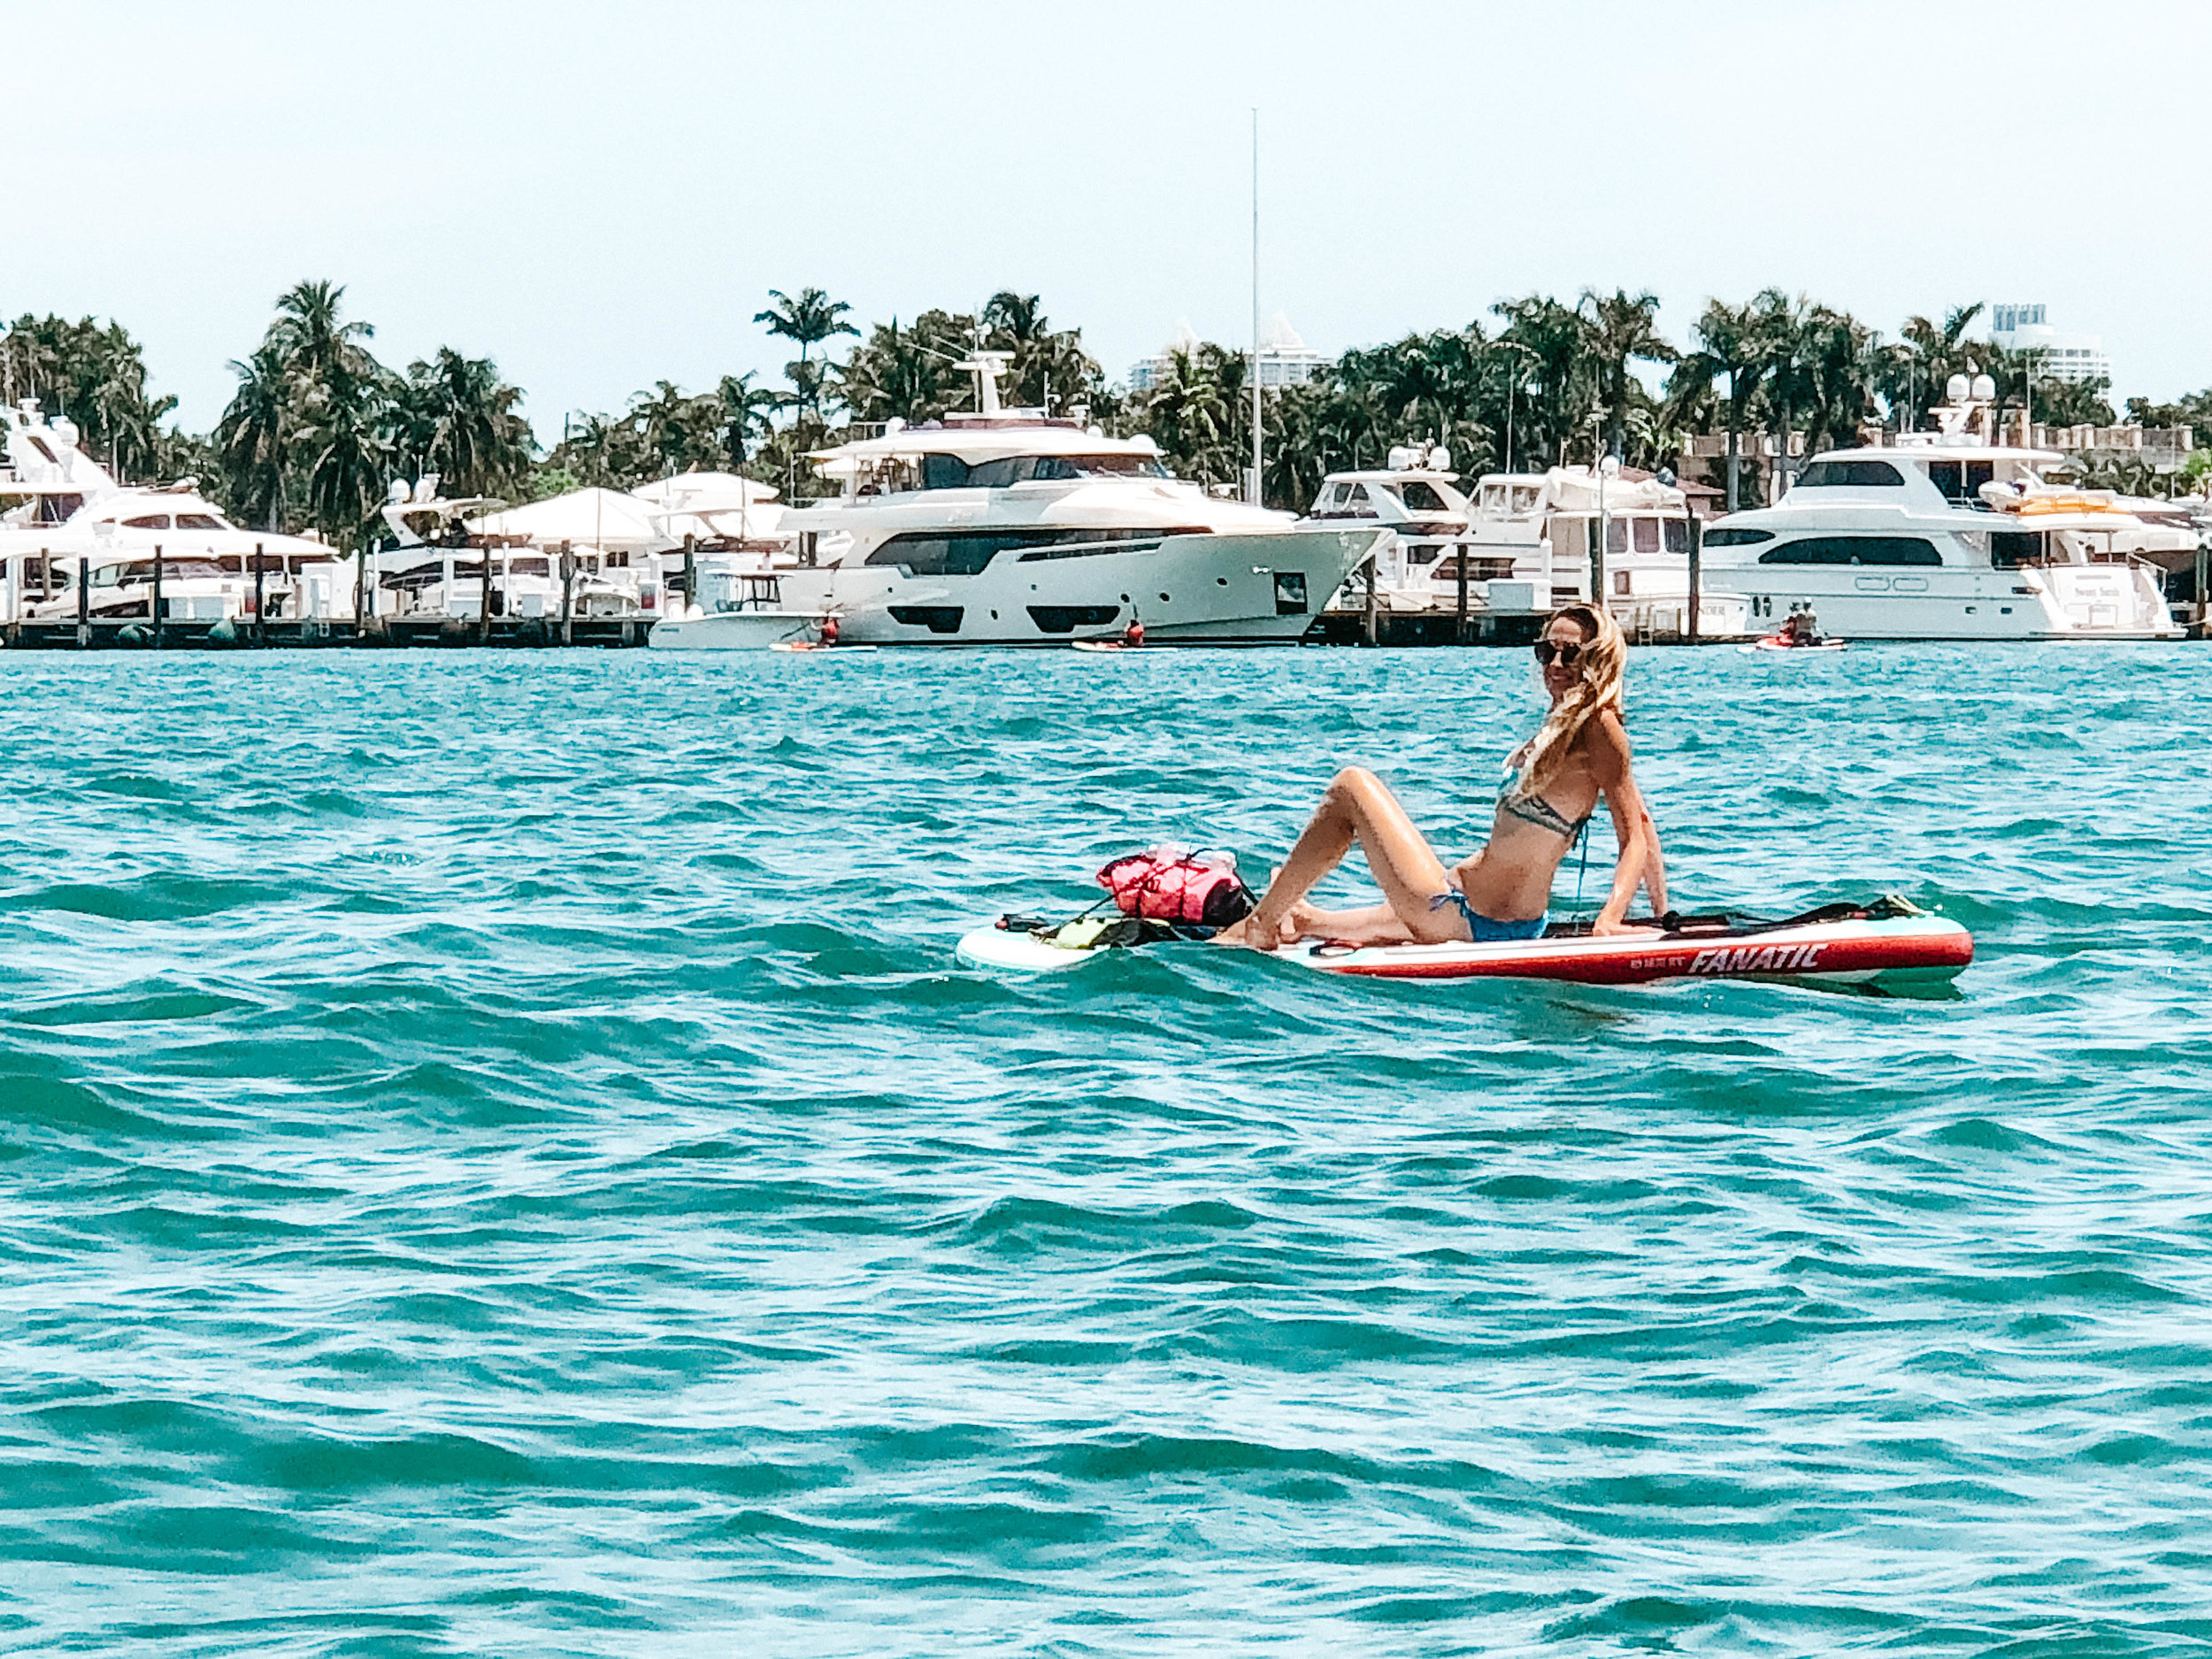 Paddleboarding Sunday April 7thh-3.jpg